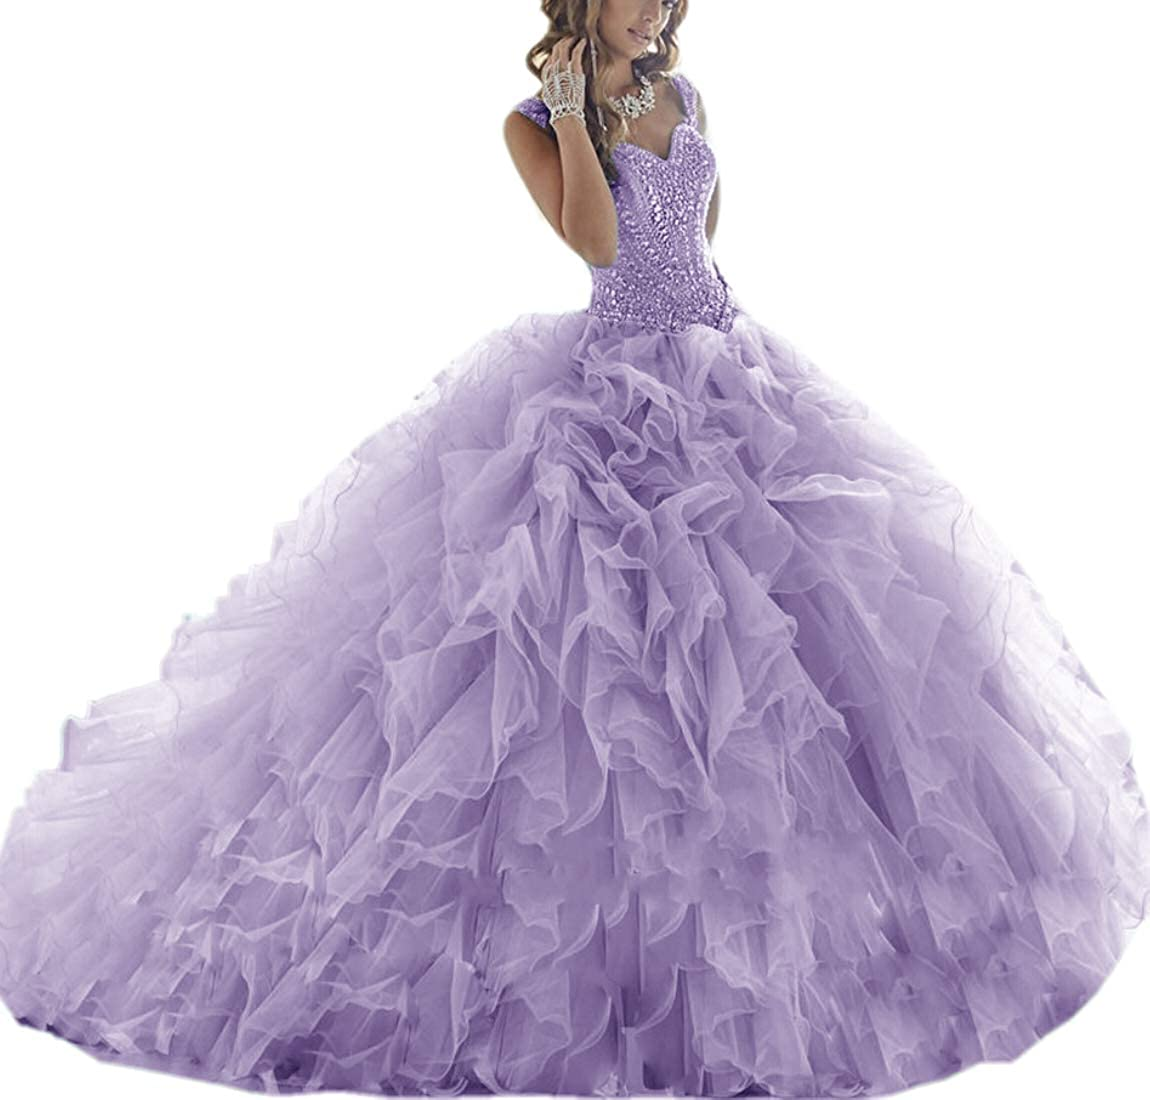 Lavender APXPF Women's Crystals Beaded Organza Ruffle Quinceanera Dress Sweet 16 Ball Gown Prom Dress